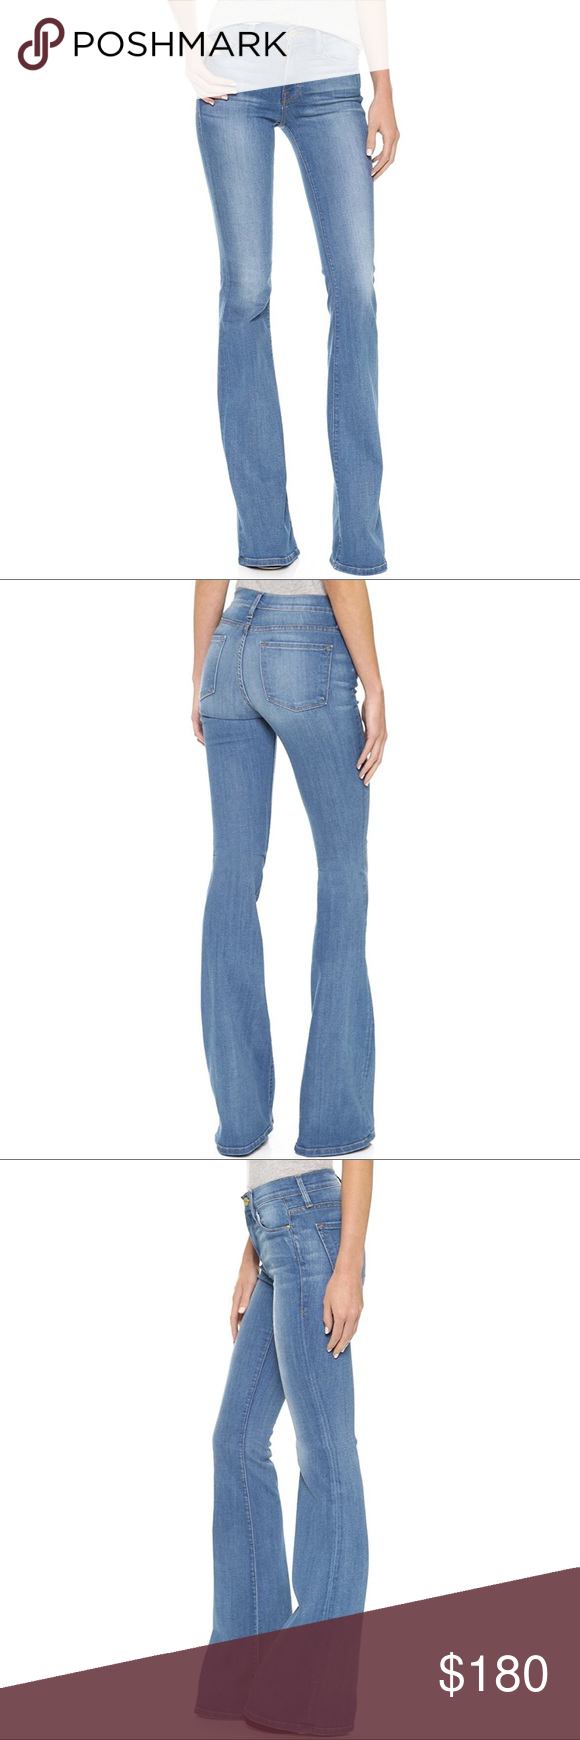 Frame Forever Karlie Tall Flare Jeans in Linden NWT | My Posh Picks ...